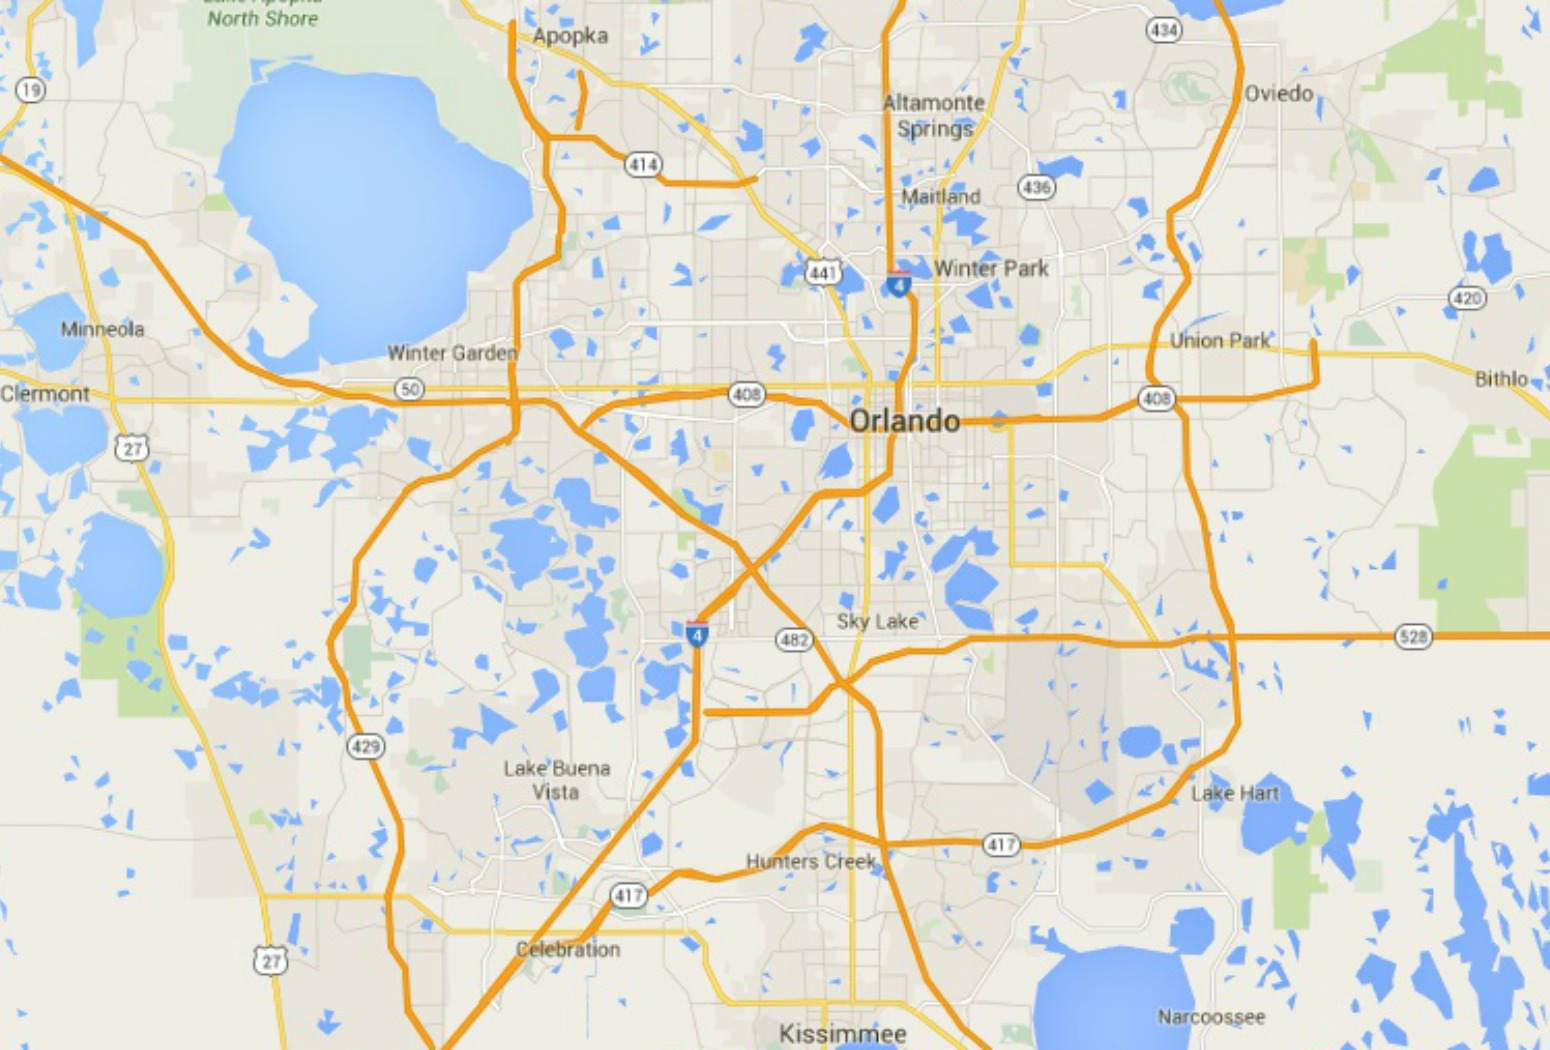 Maps of Florida: Orlando, Tampa, Miami, Keys, and More